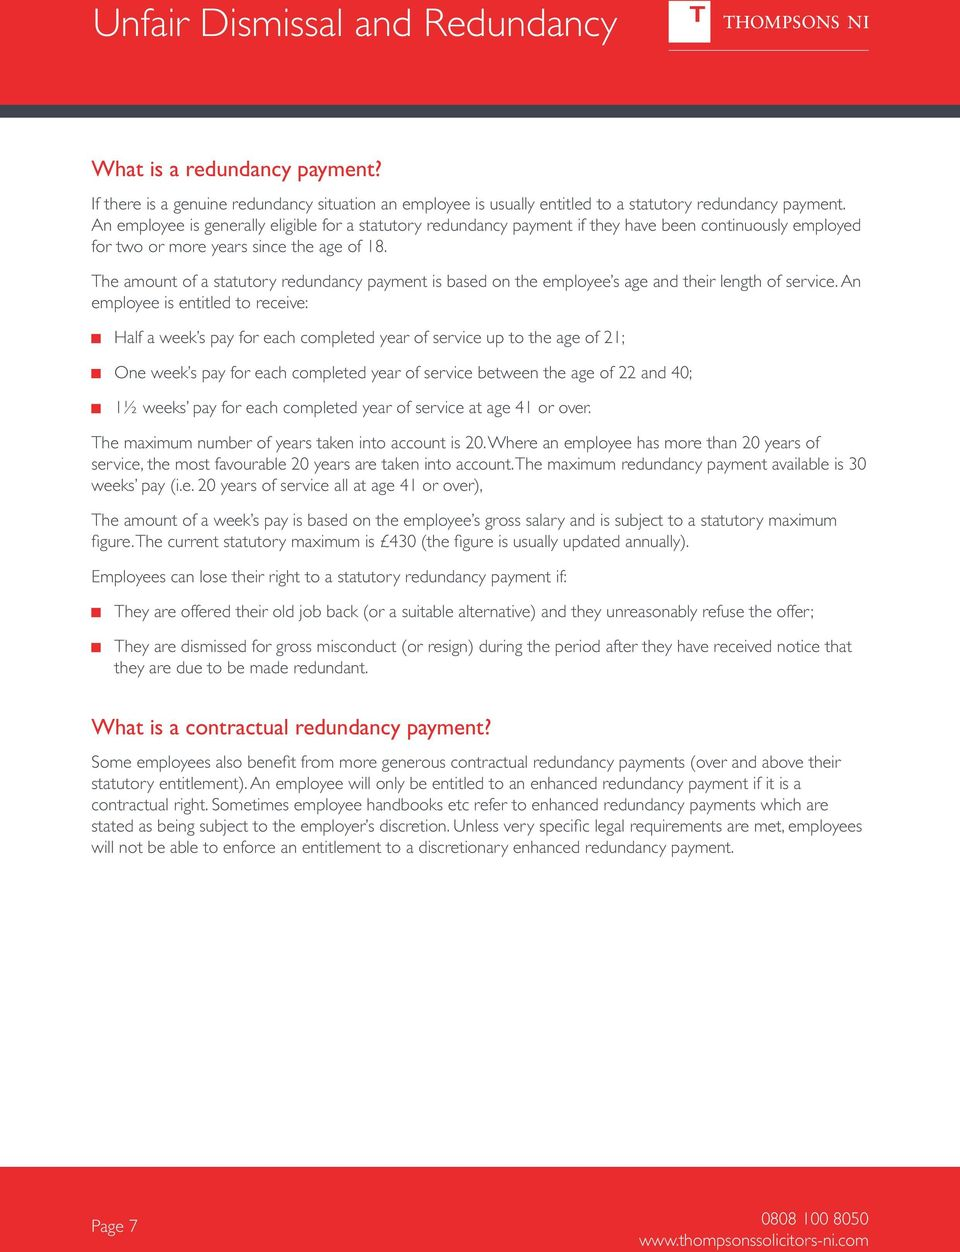 The amount of a statutory redundancy payment is based on the employee s age and their length of service.